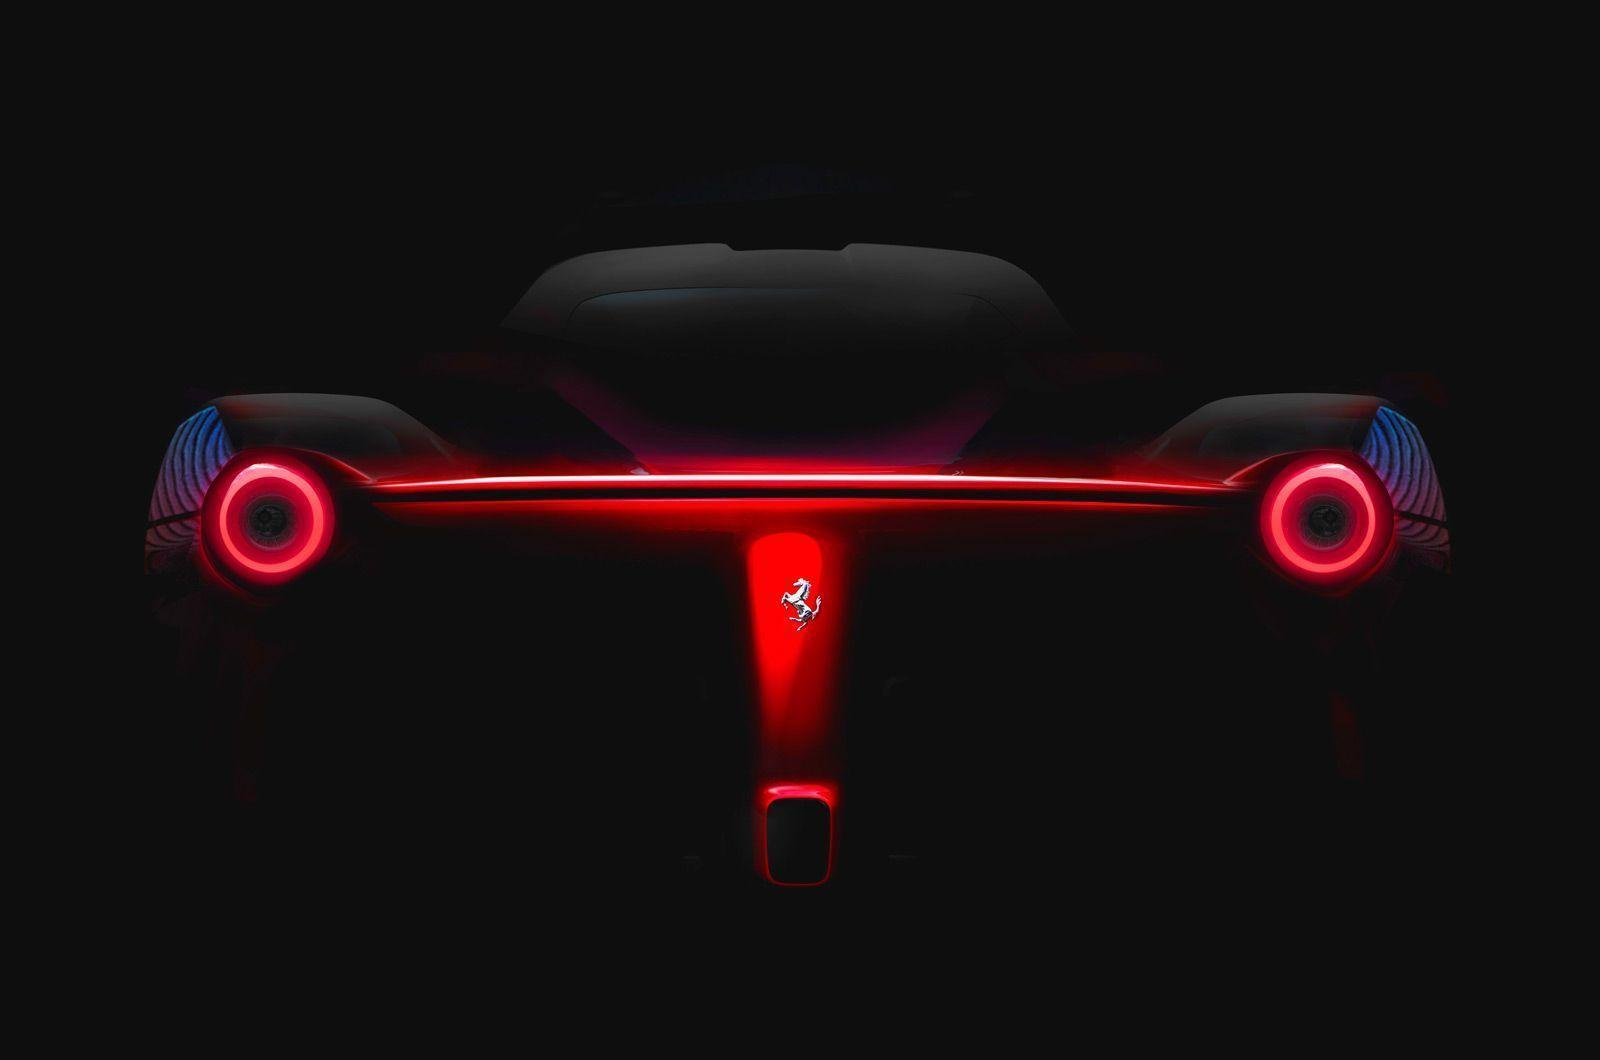 wallpaper ferrari, ferrari wallpaper 4k